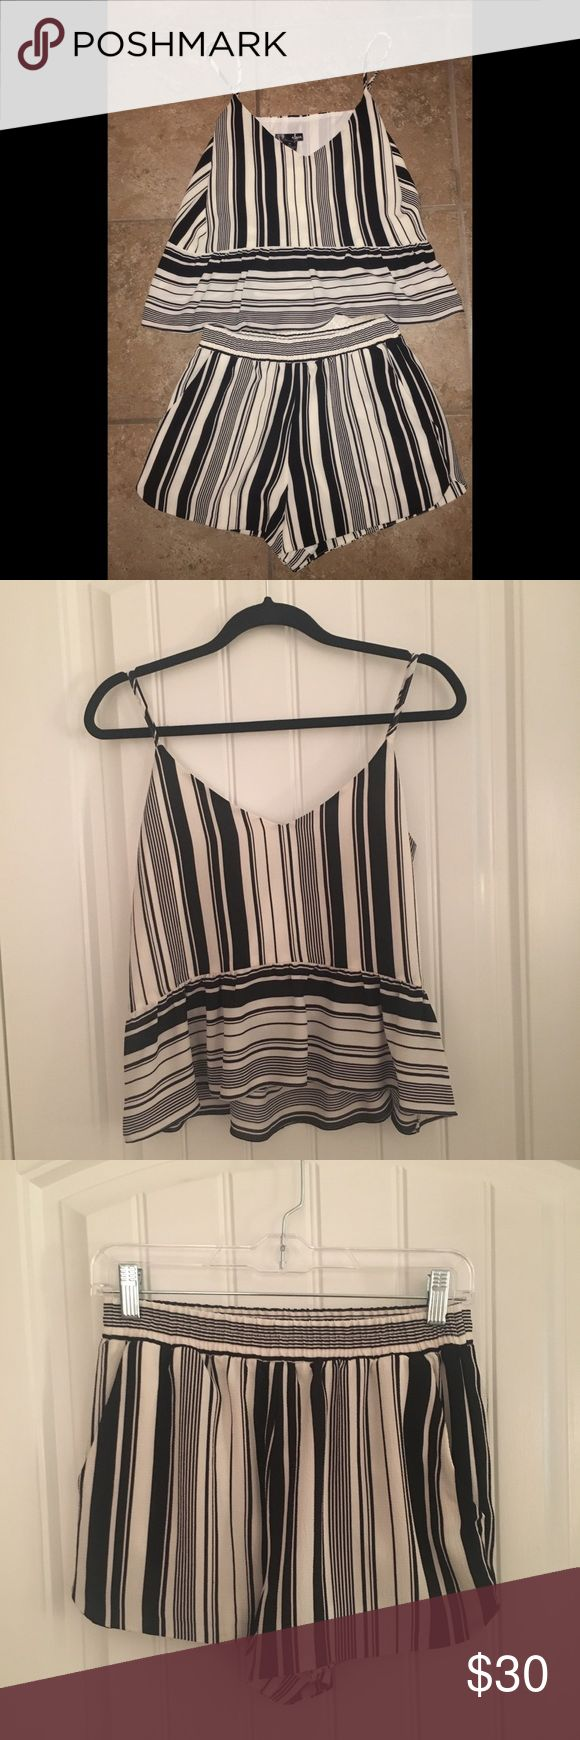 NWT Bloomingdales Aqua Two Piece Set Black and White Stripe Two Piece Set, Top- M & Shorts- M Aqua Other